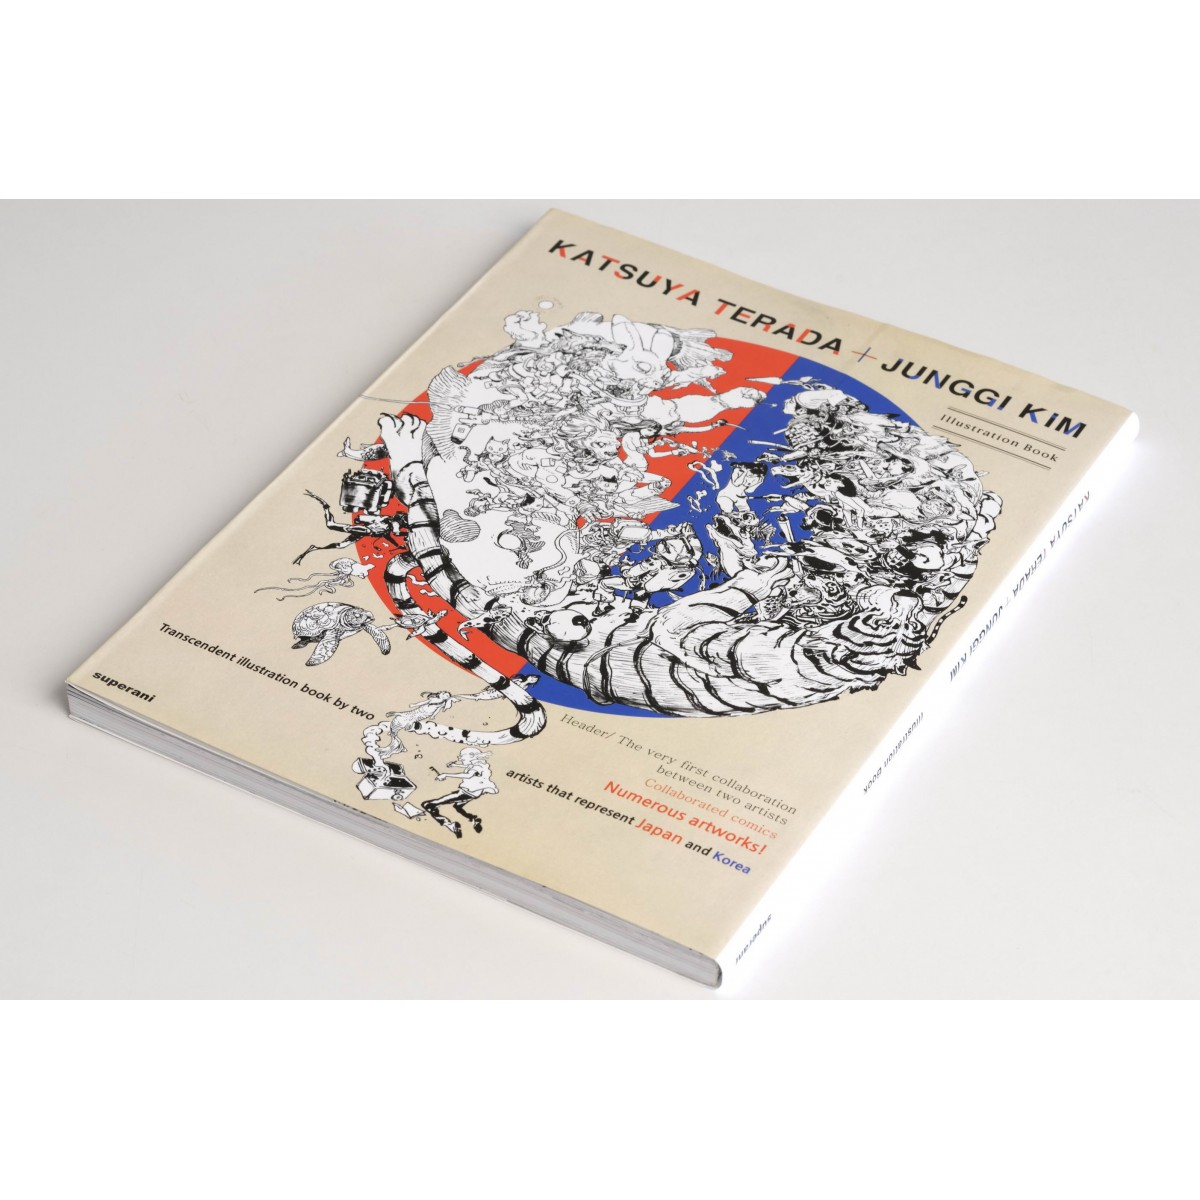 Terada Katsuya + Kim Jung Gi Illustration Book [Version Anglaise]